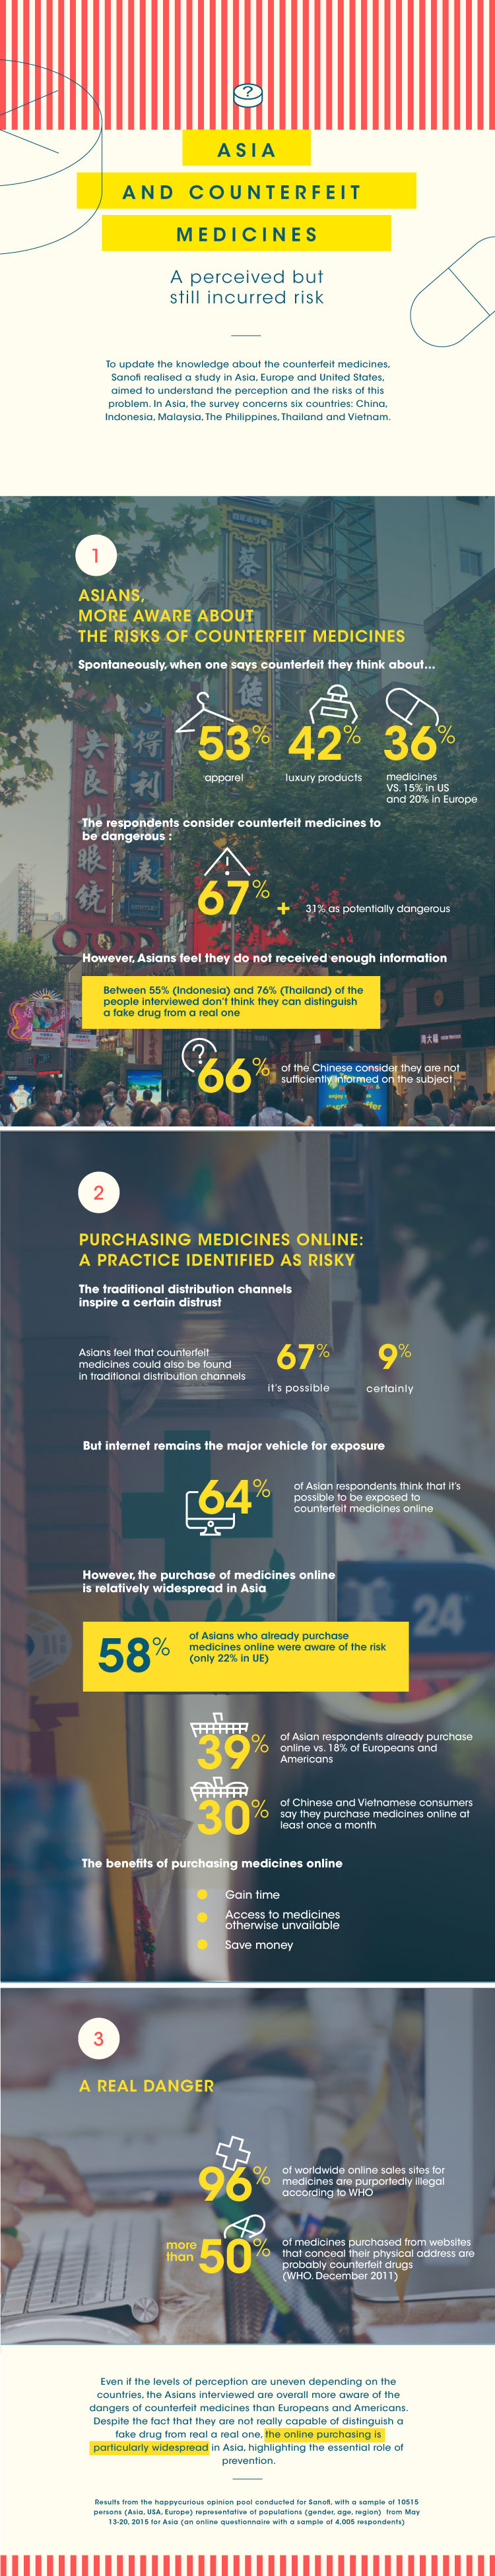 Survey of 5 Asian countries on awareness of fake medicines